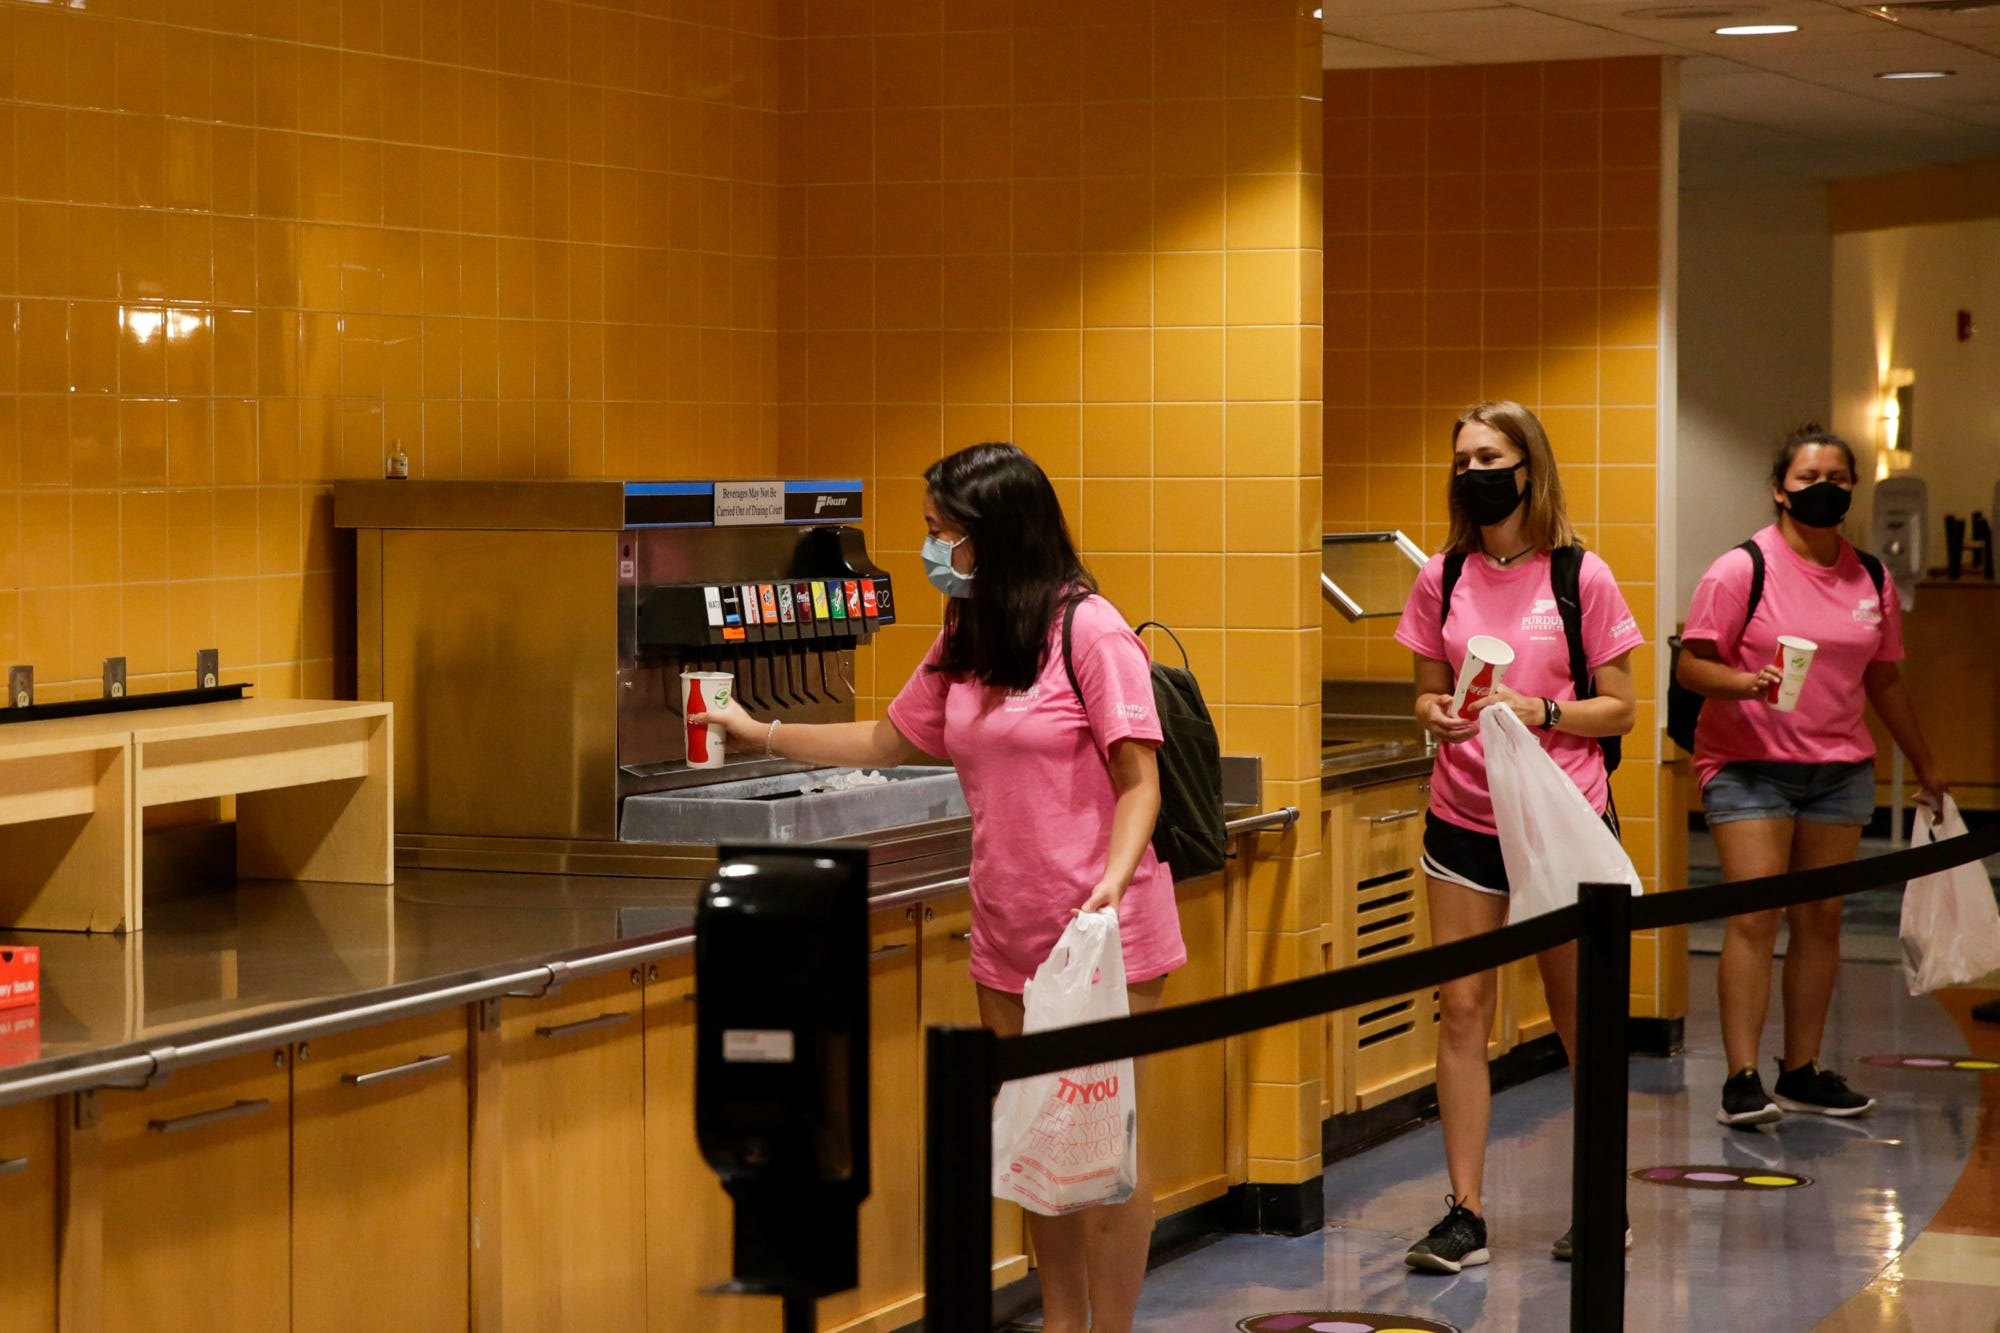 Students queue inside Earhart Dining Hall for lunch Aug. 13 at Purdue University in West Lafayette.